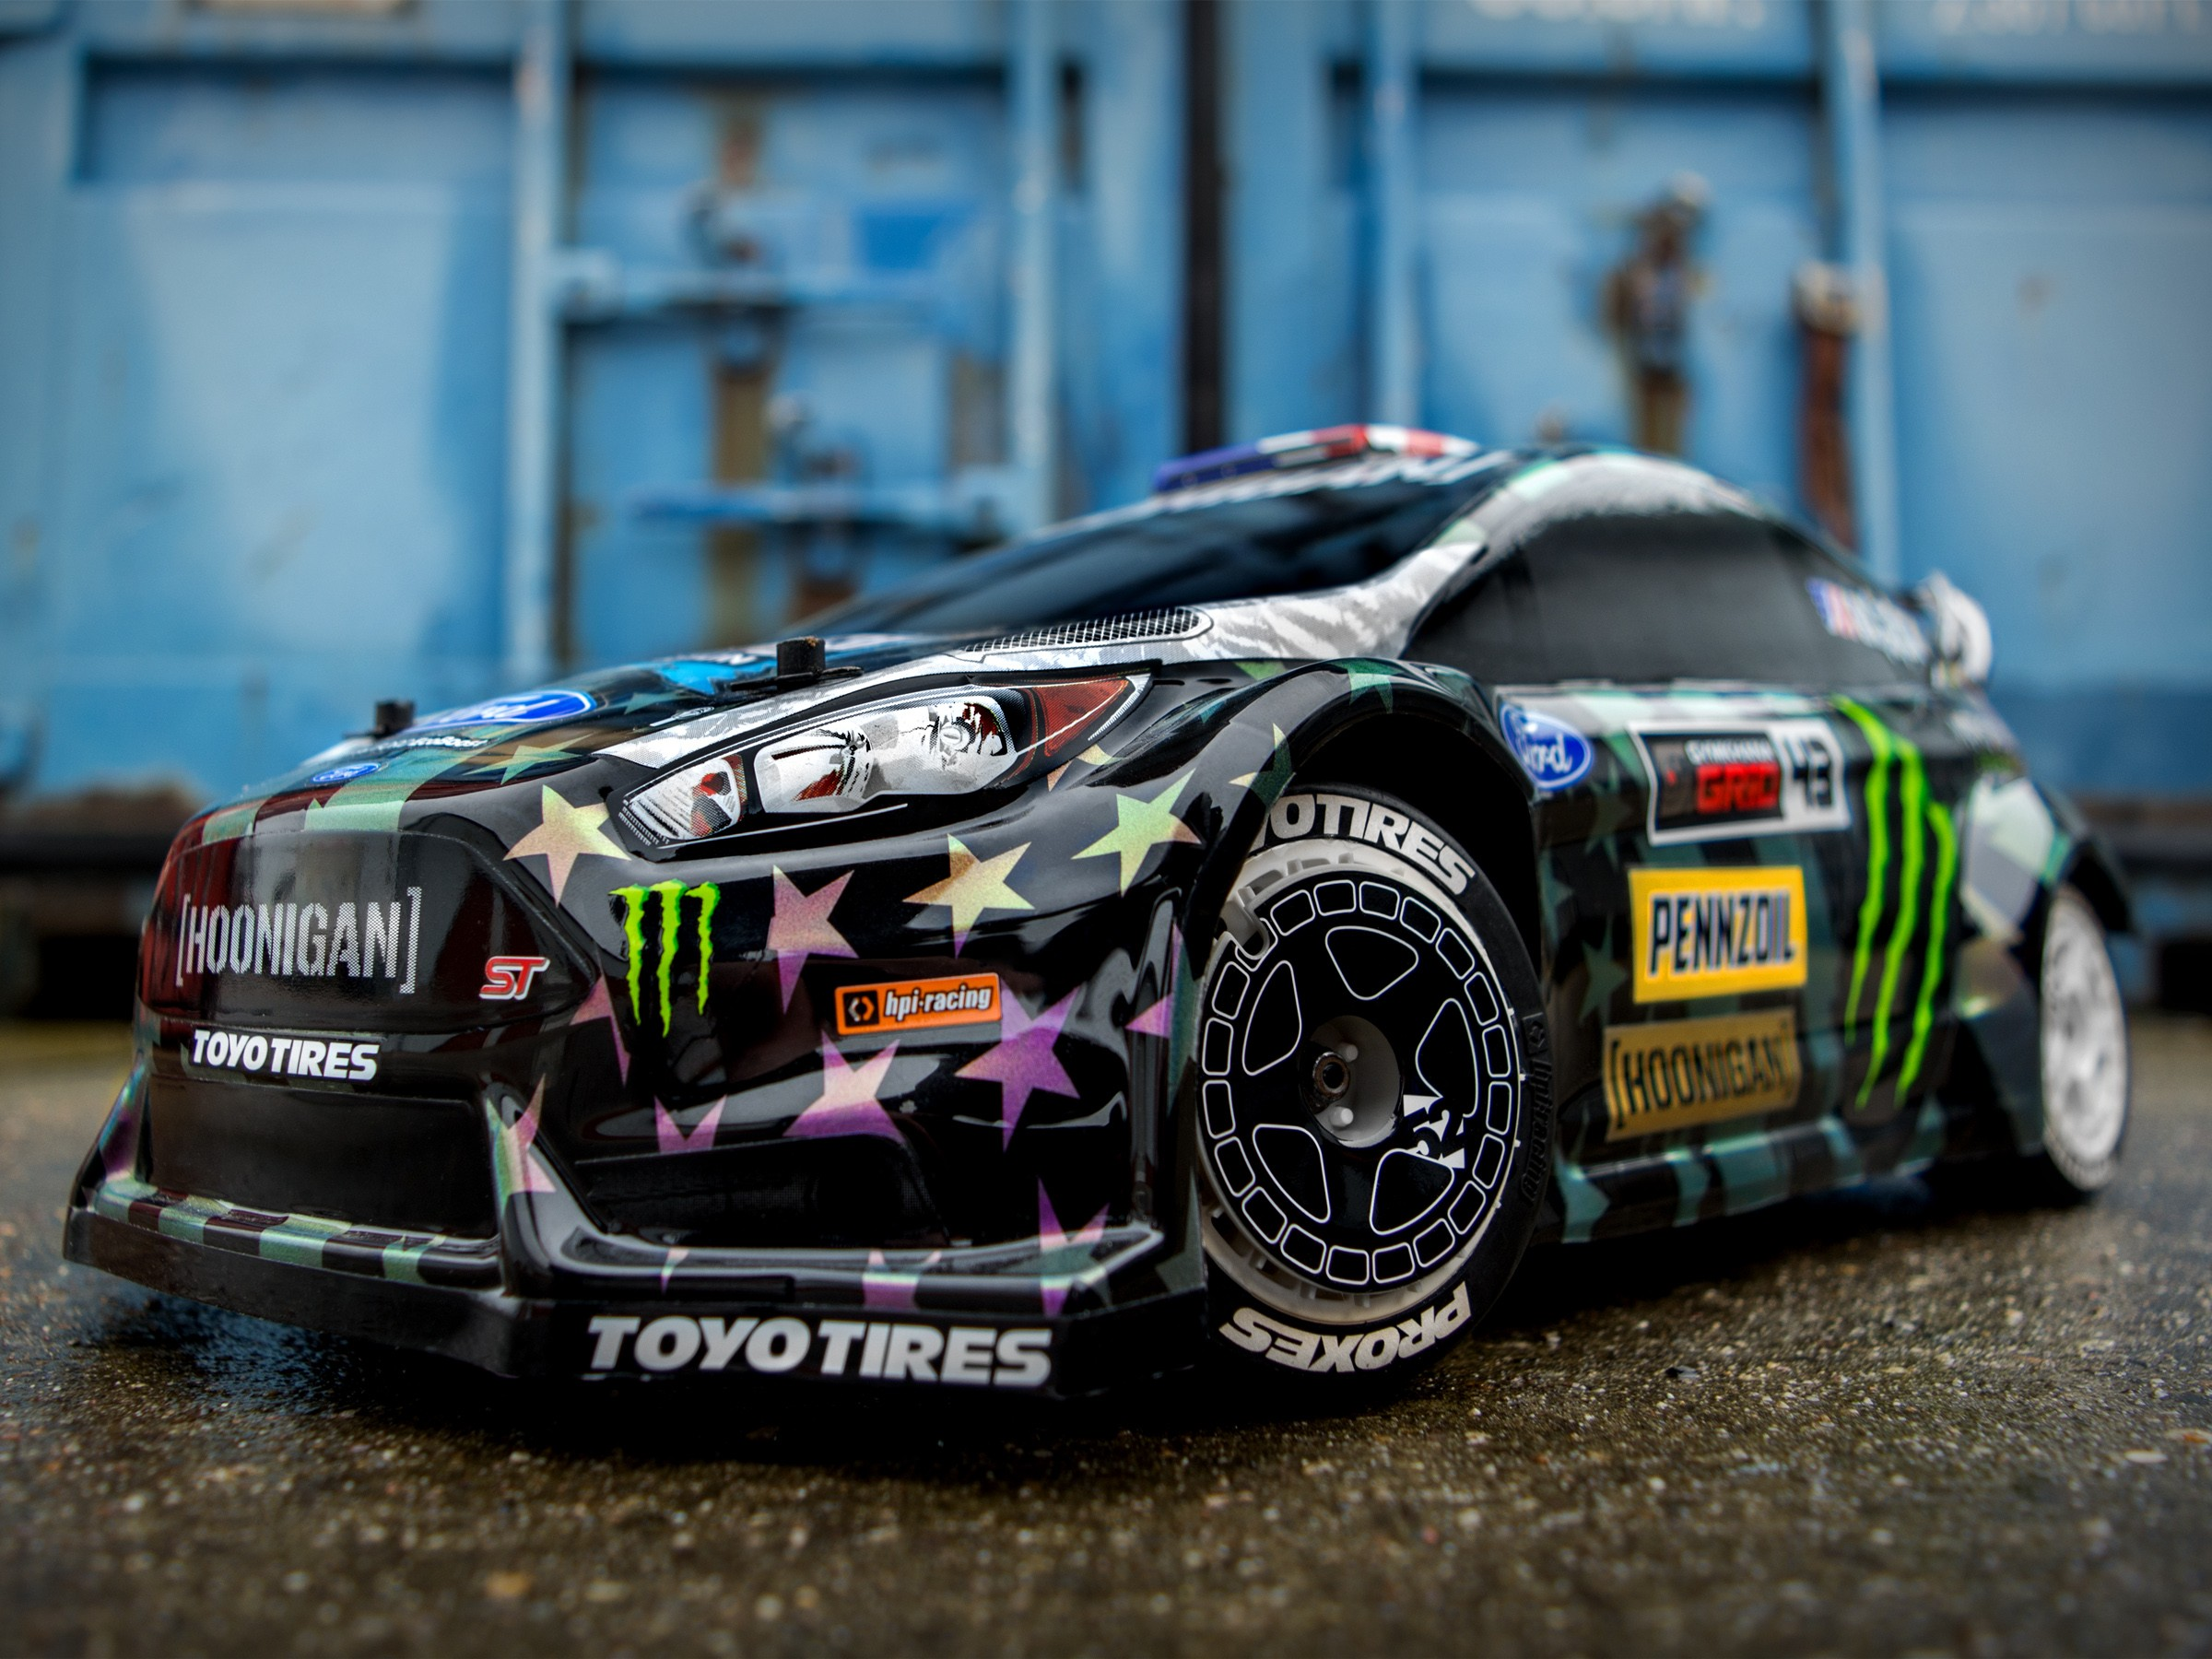 Ken block continues to pump out the hits and his latest ford fiesta st rx43 performance car is available now on both flux and nitro version of the amazing